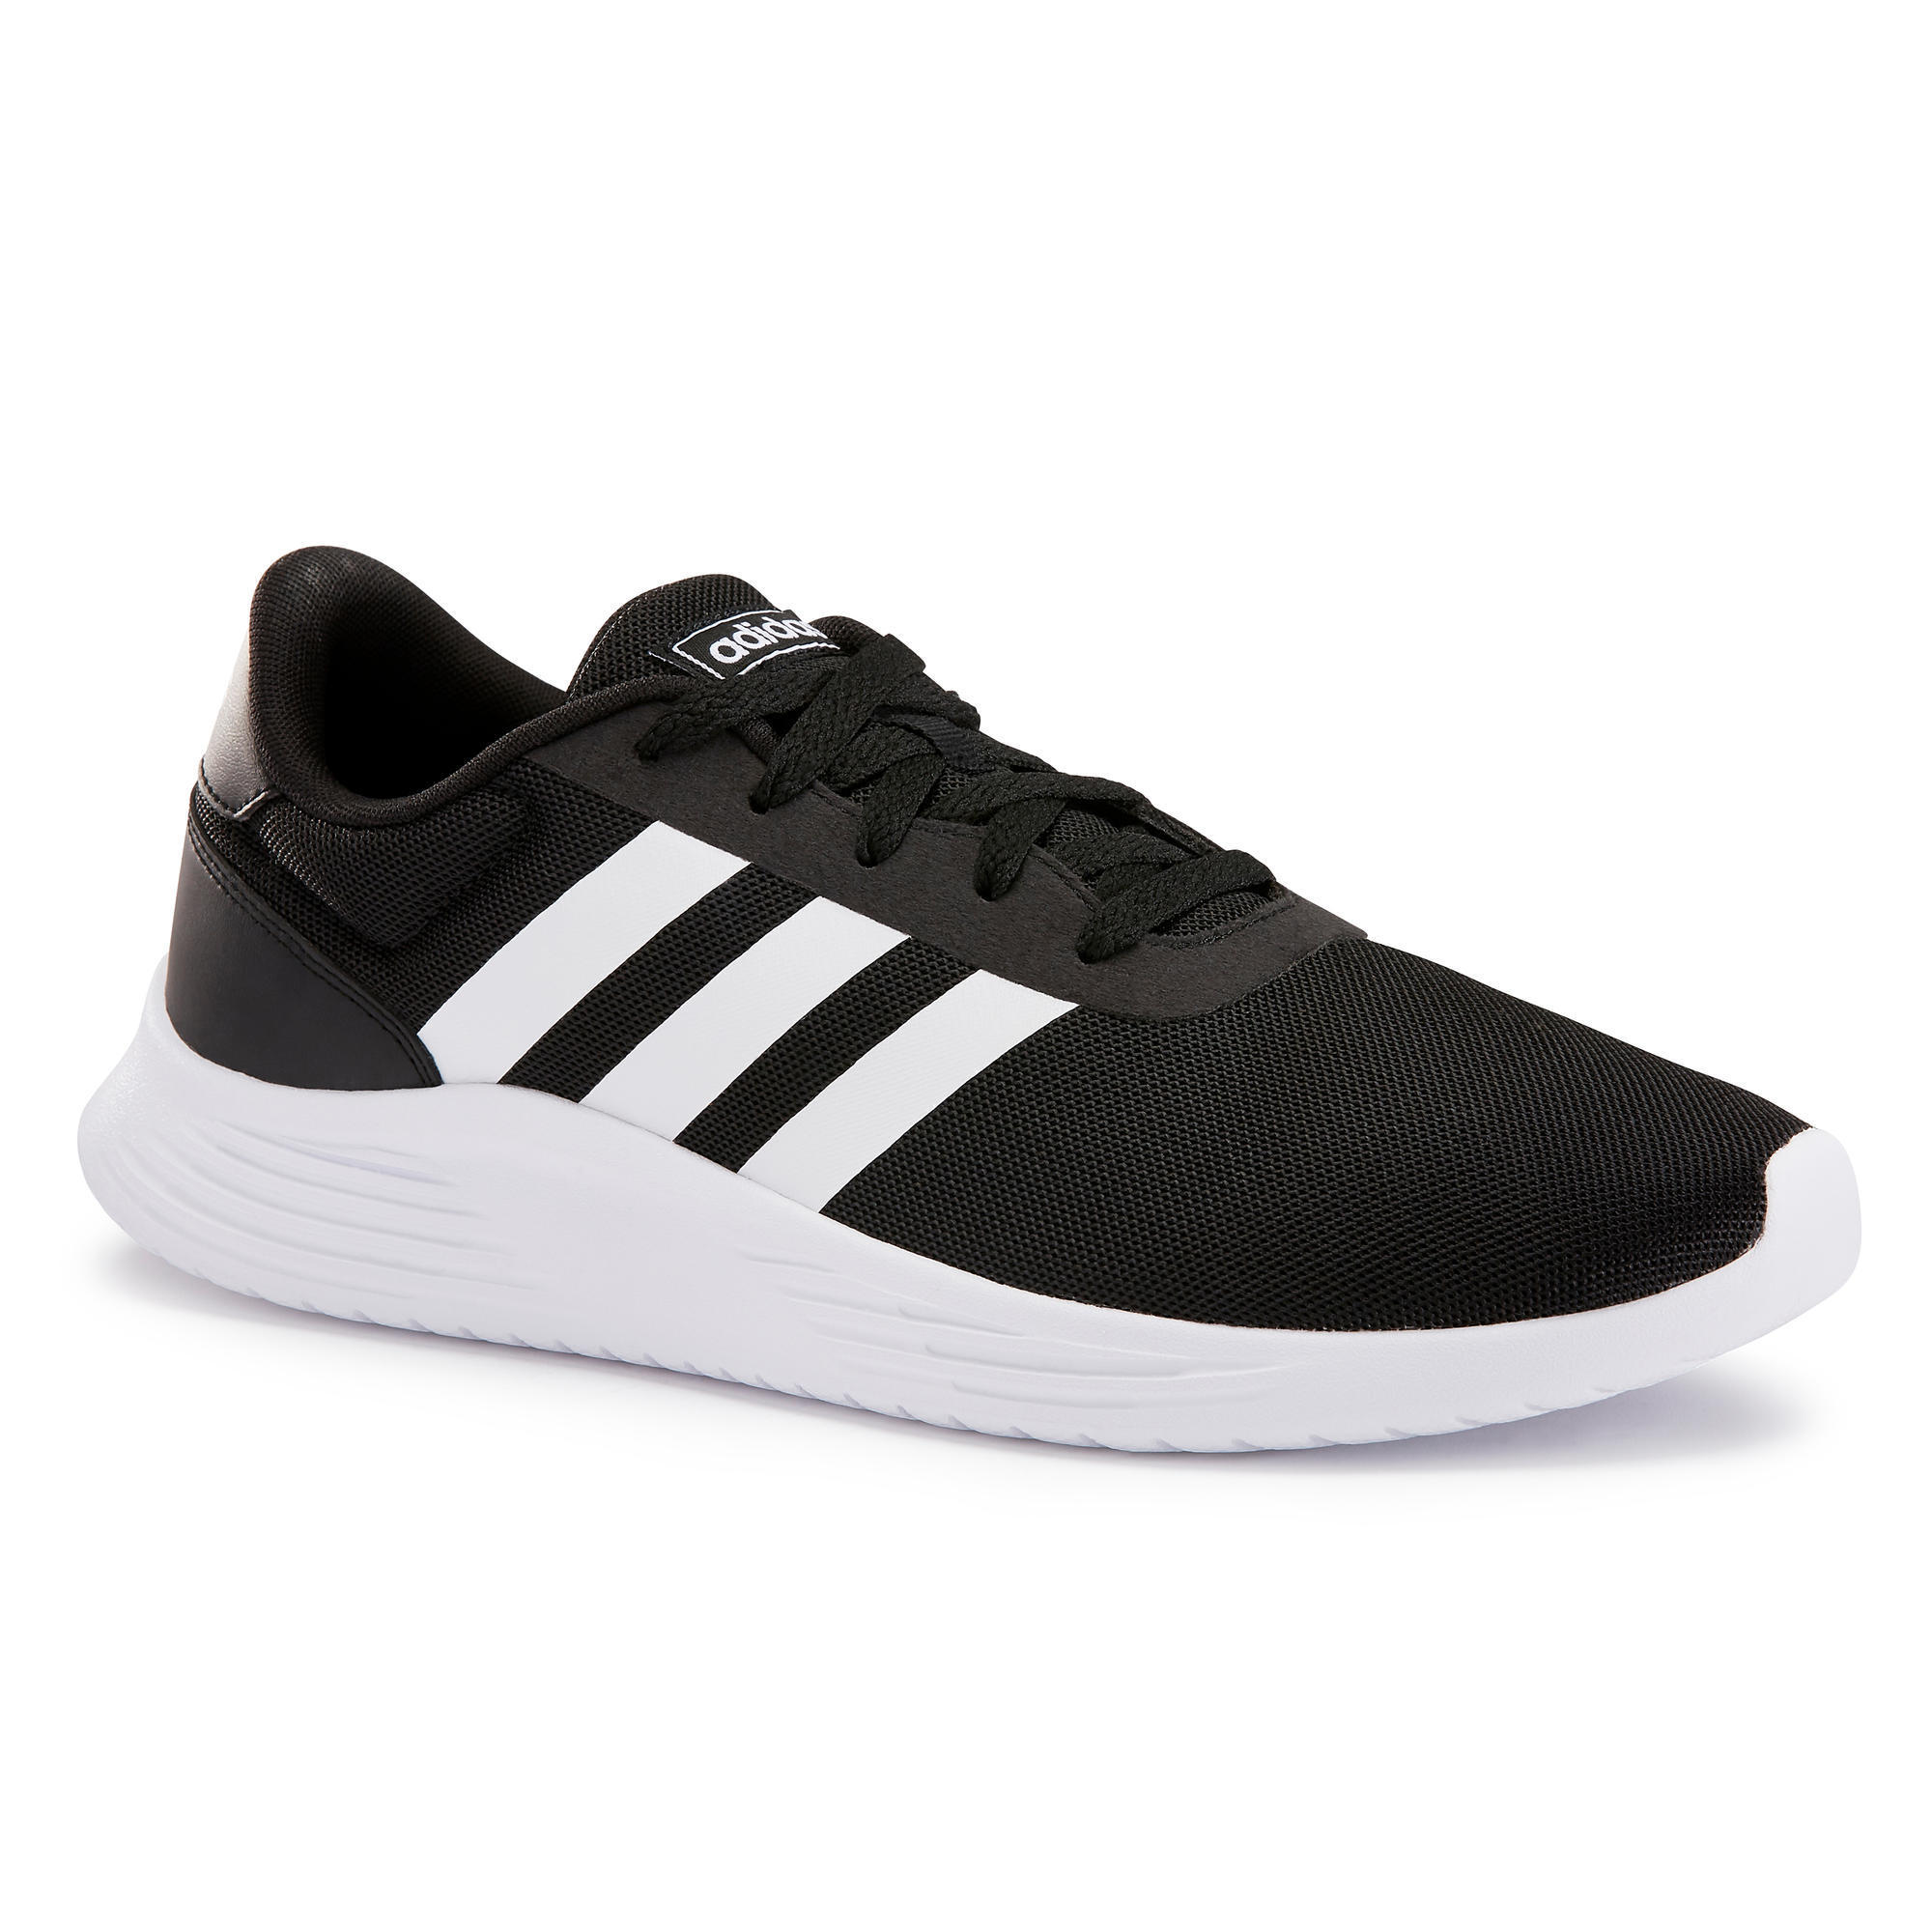 adidas homme chaussures marche